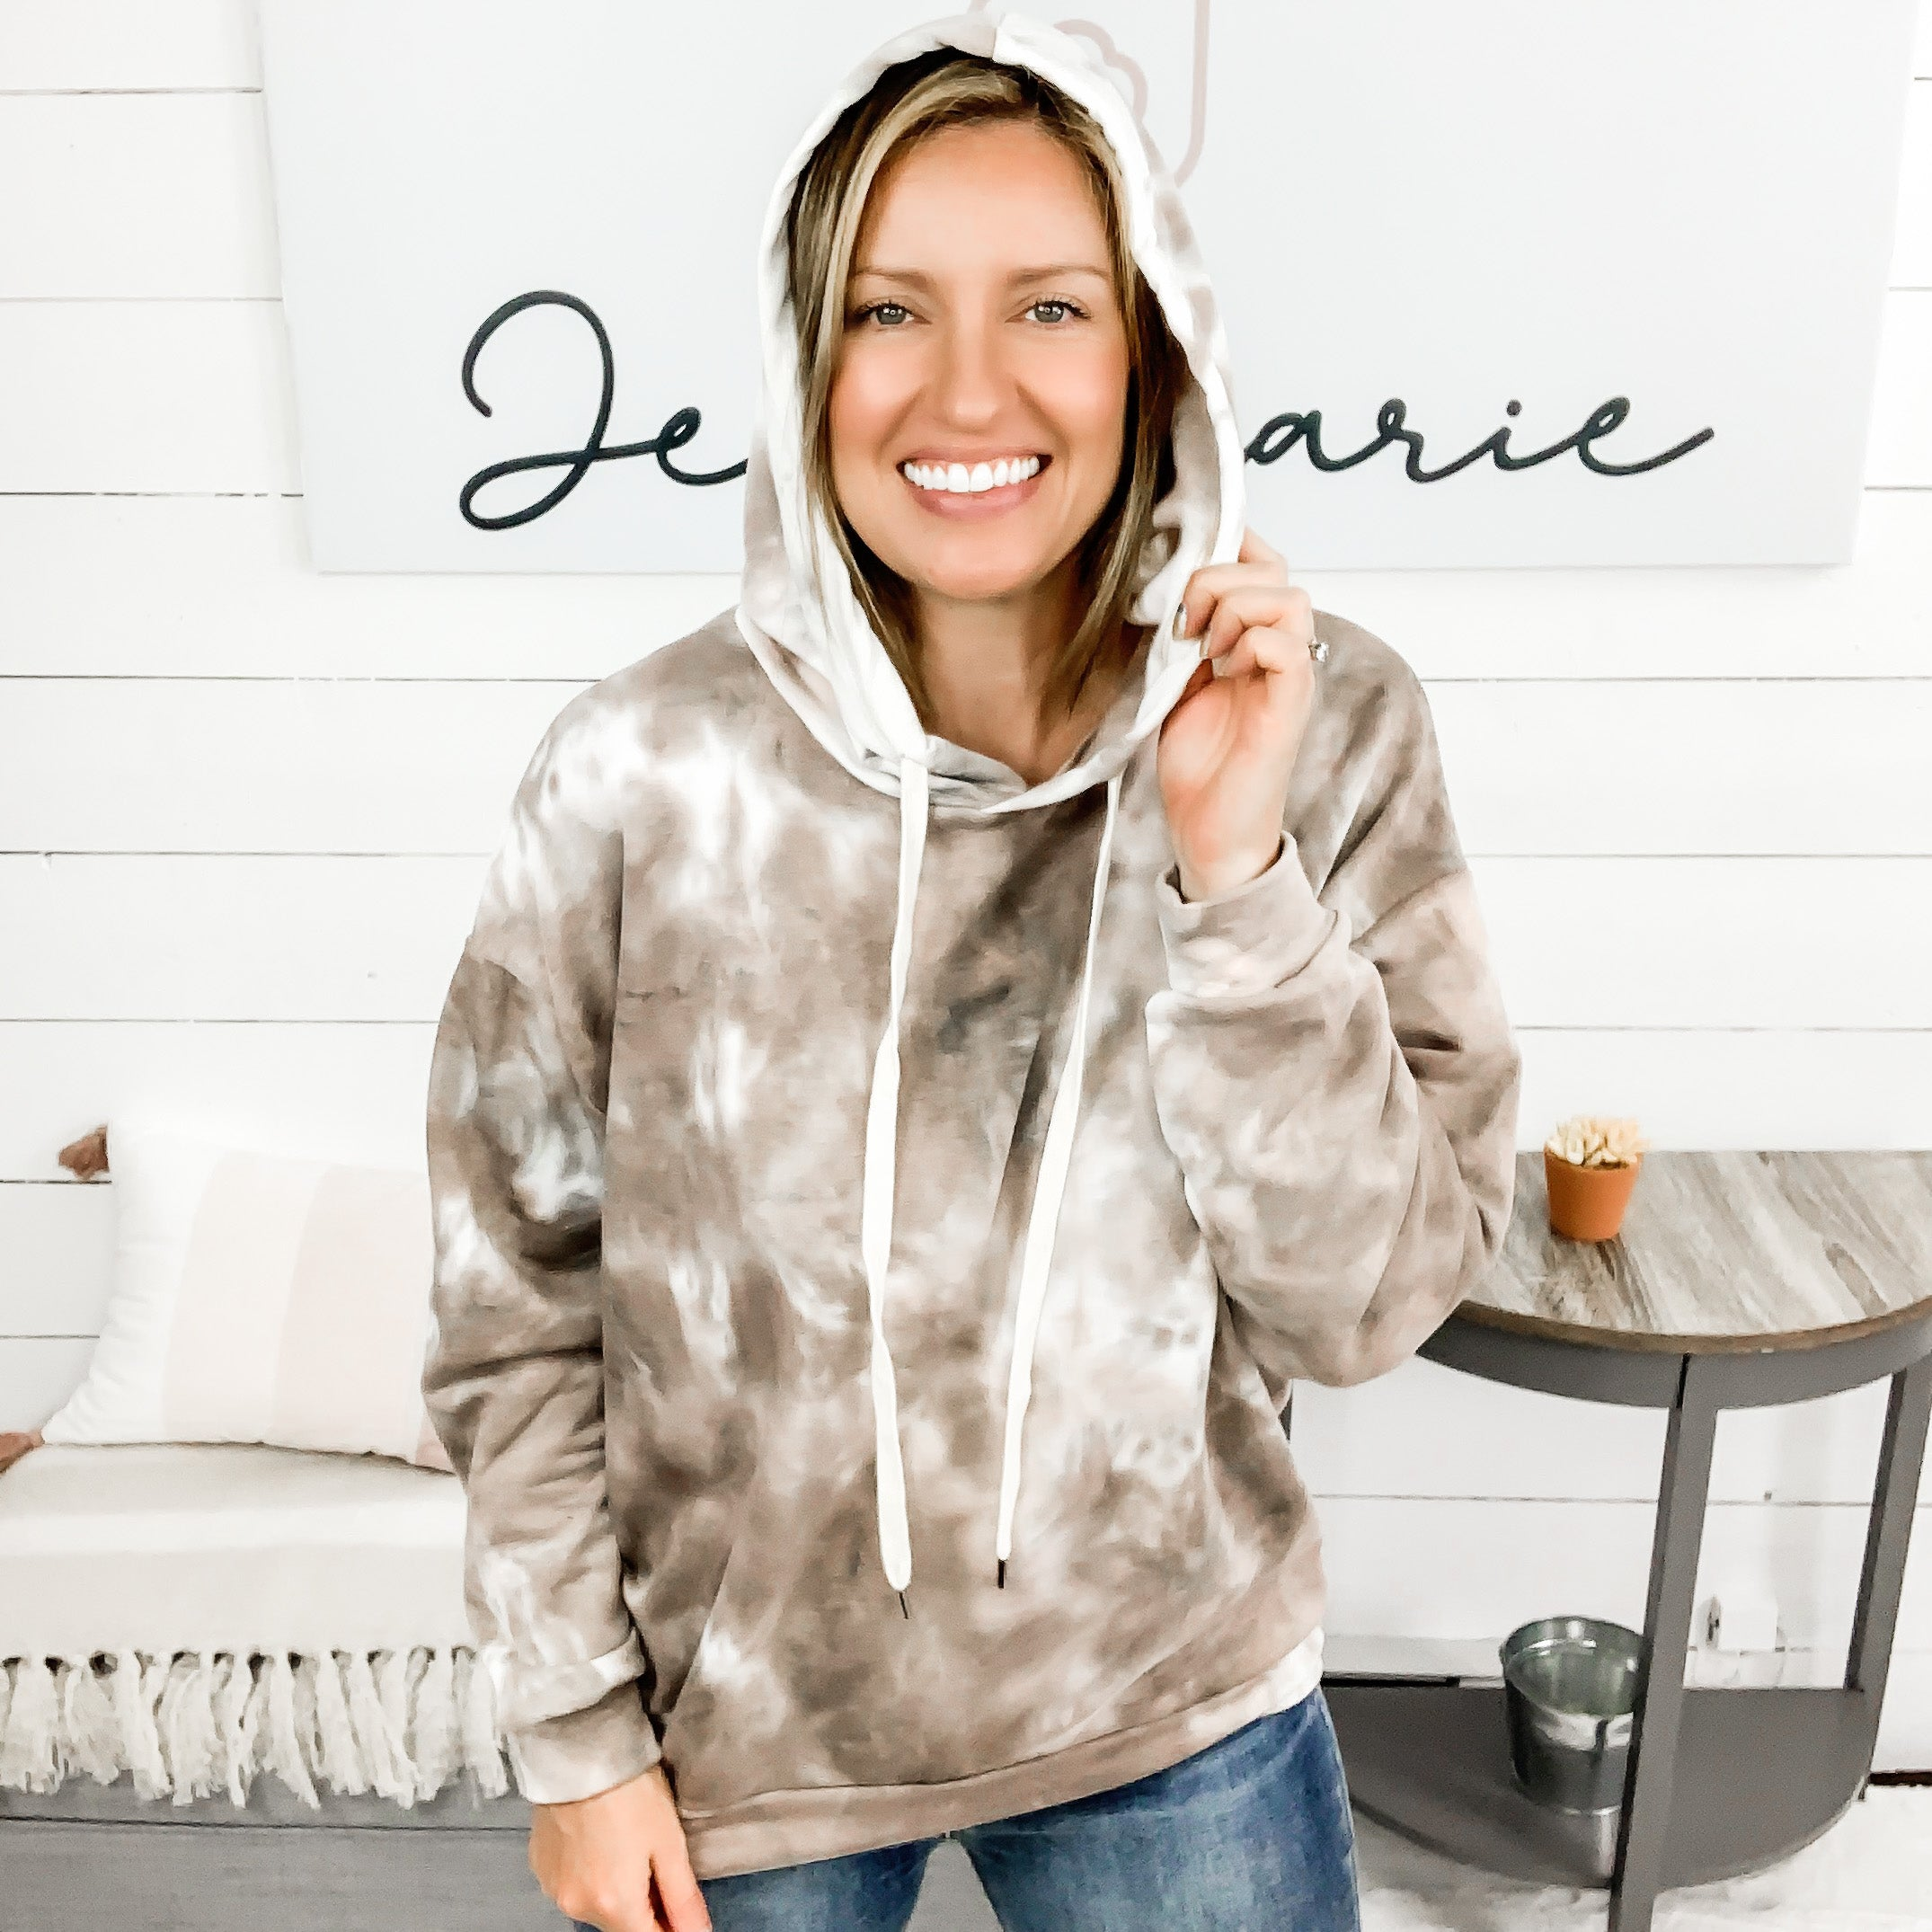 White Birch Burgundy or Mocha Long Sleeved Tie Dye Sweatshirt